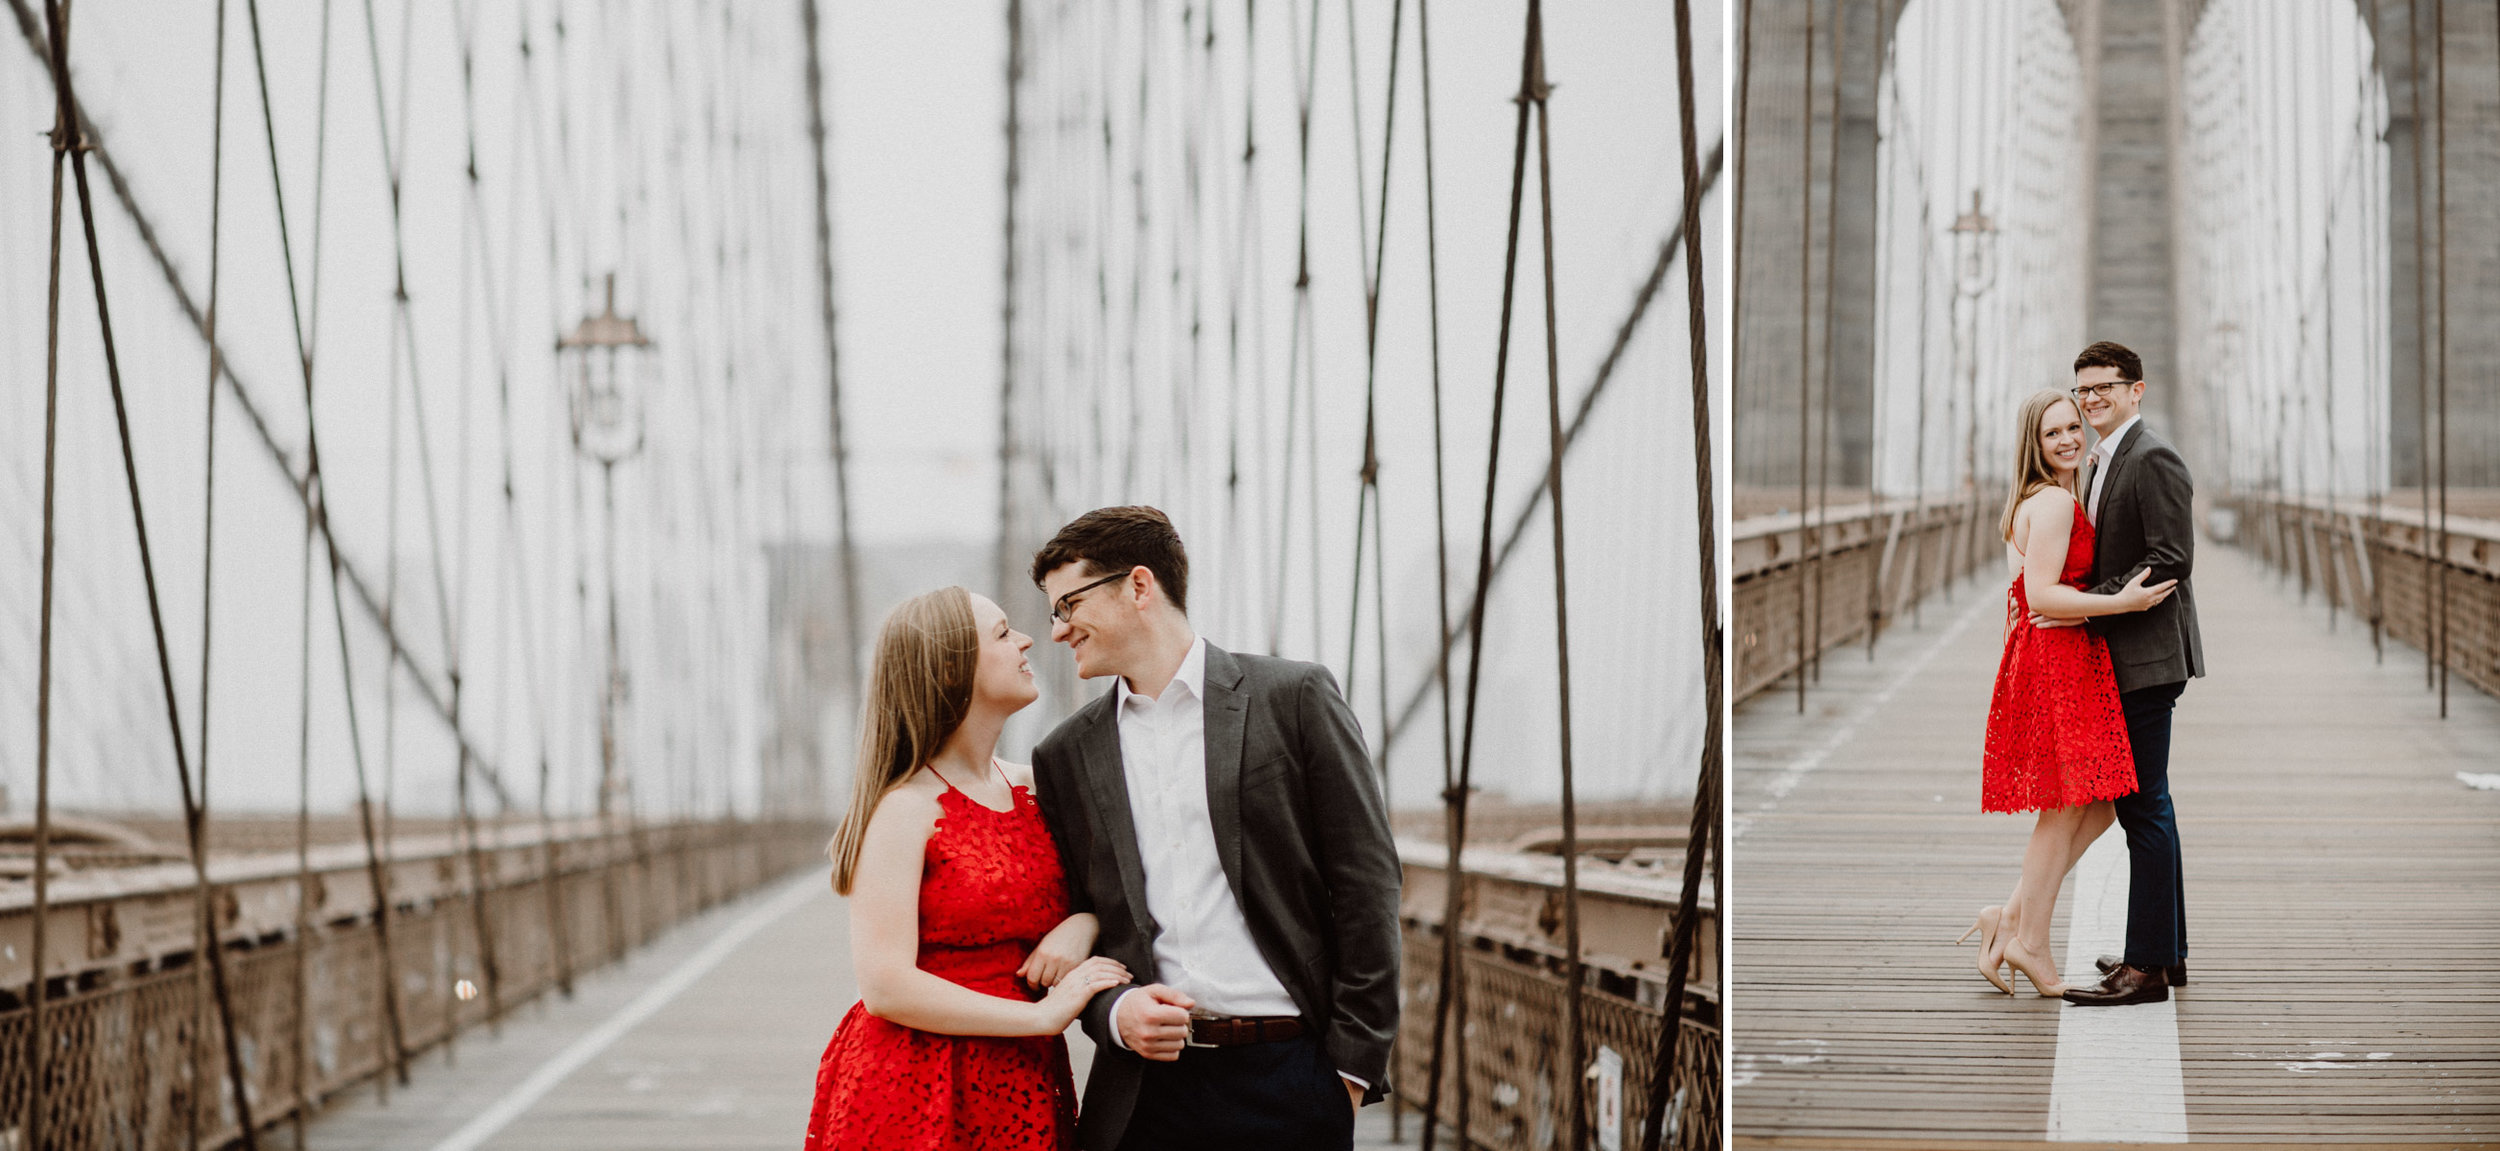 brooklyn-bridge-engagement-photos-2.jpg